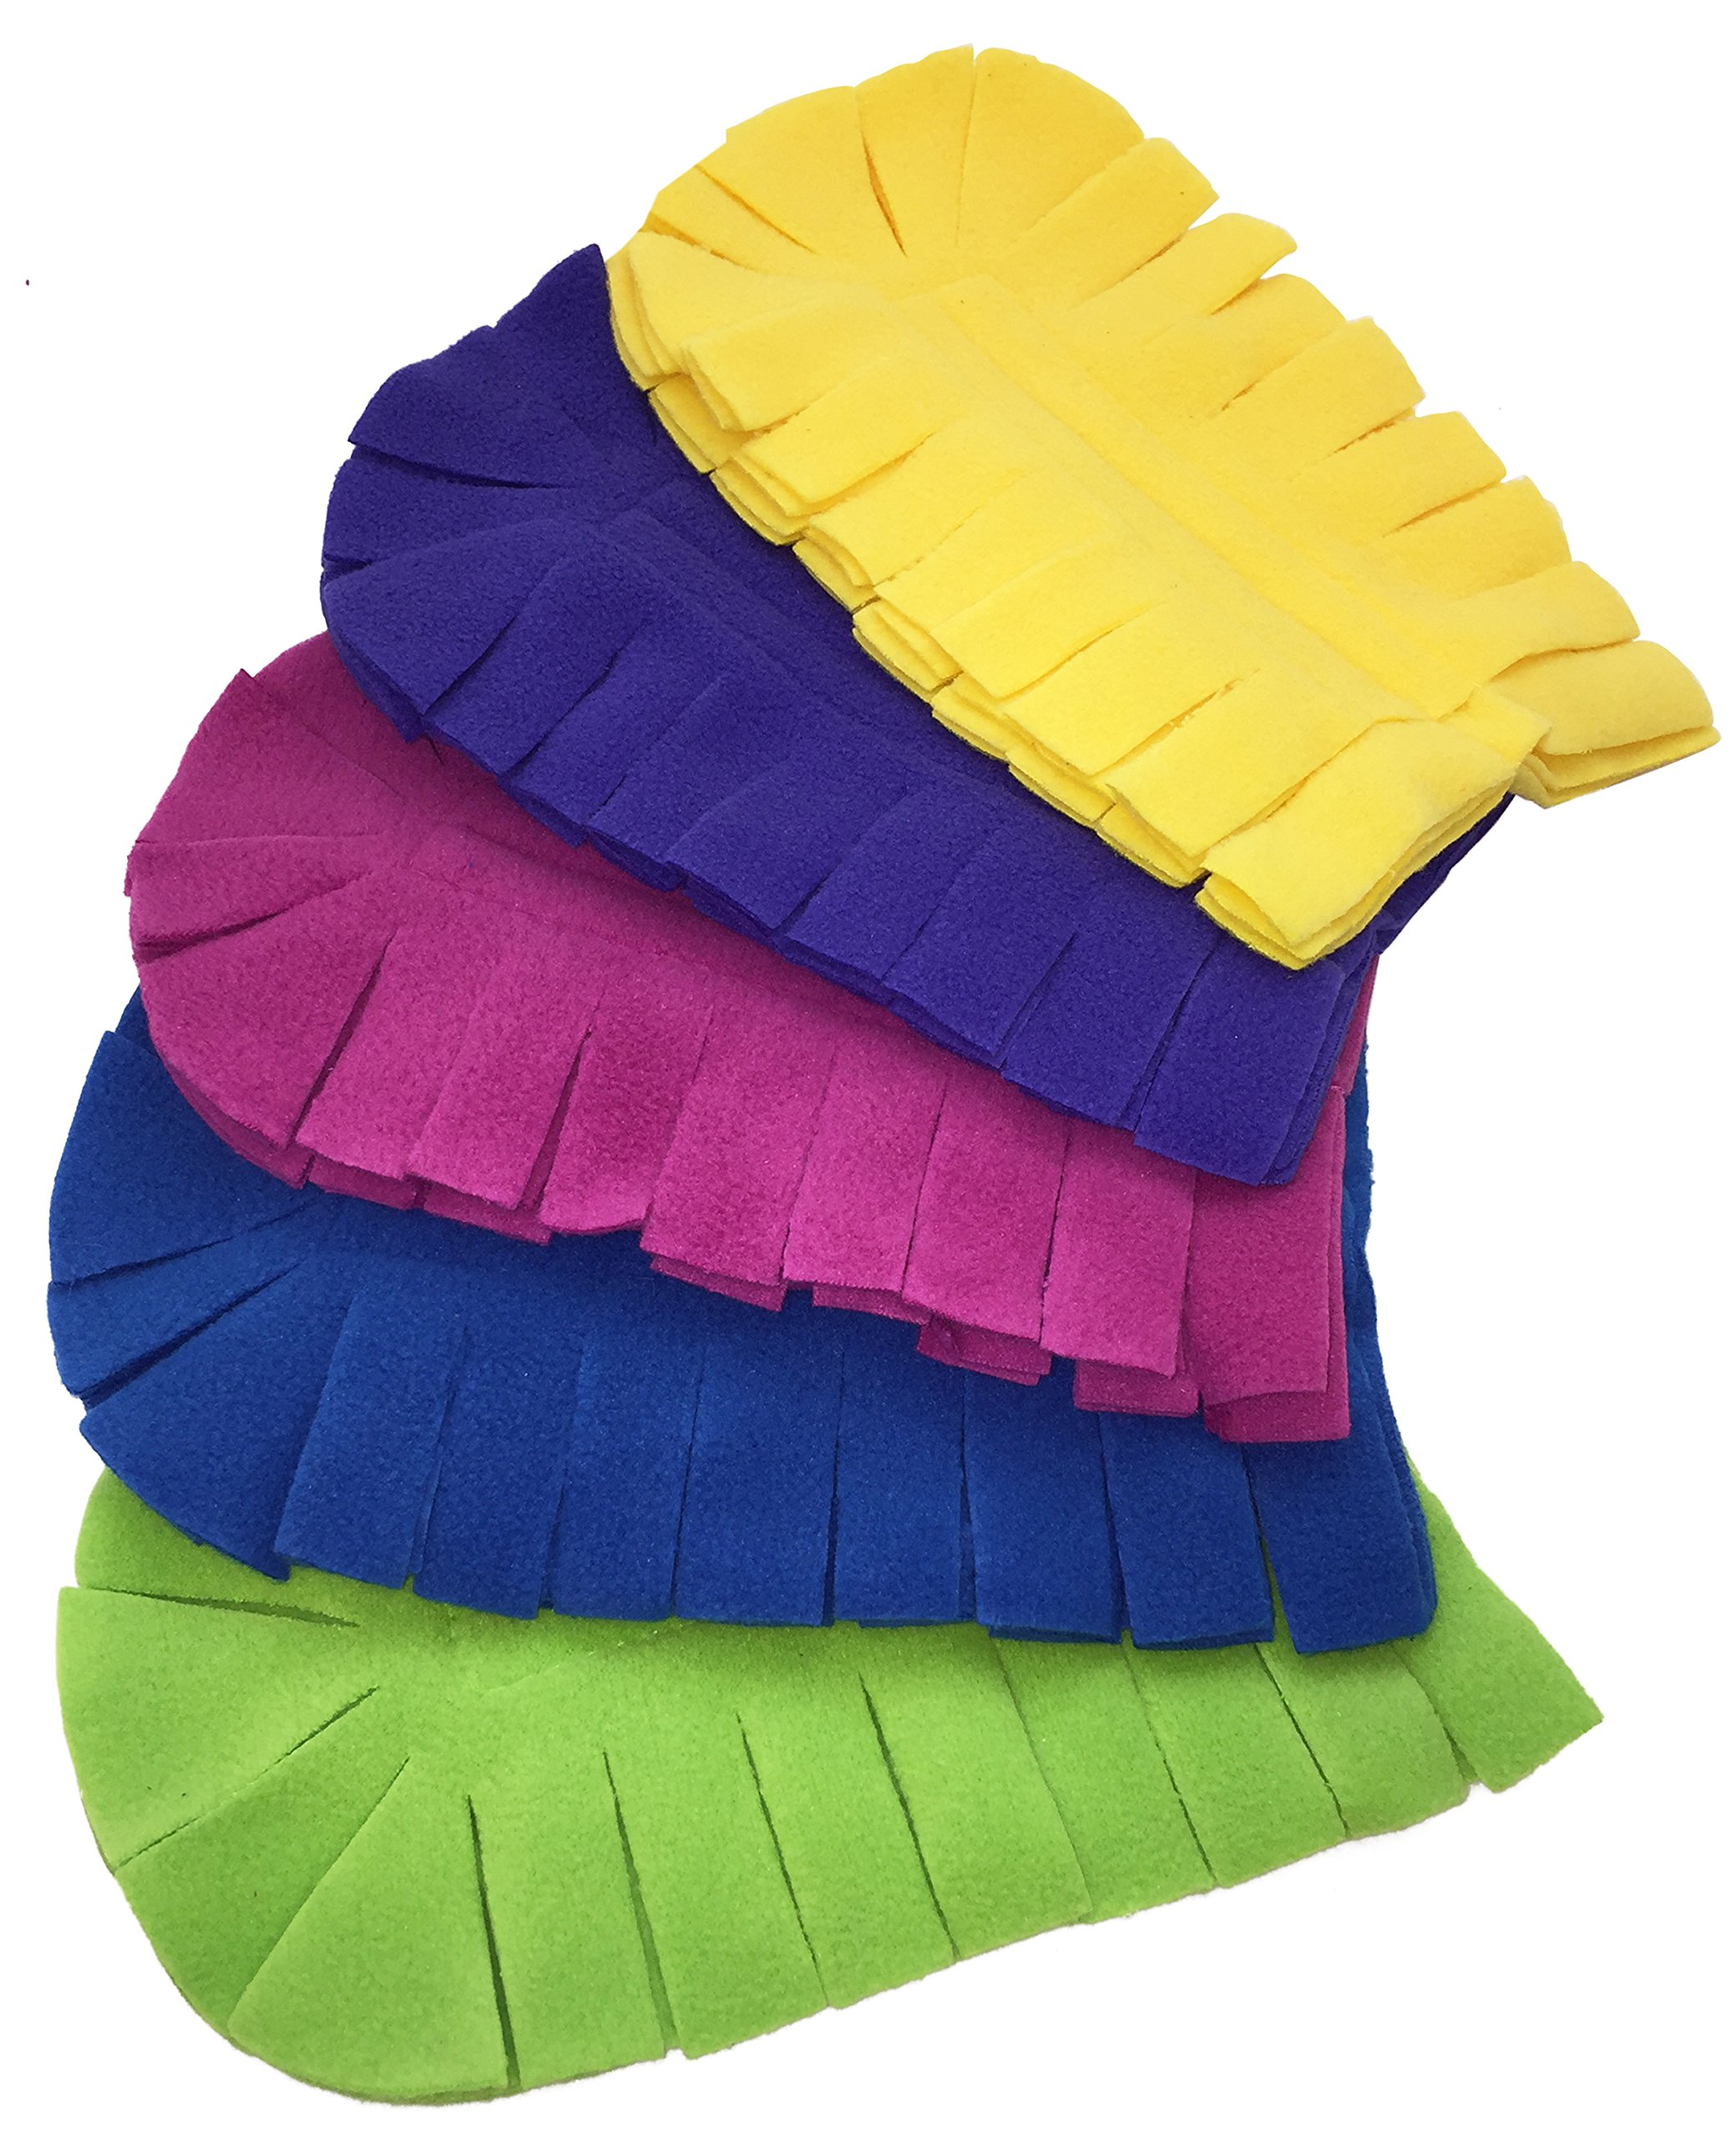 Xanitize Fleece Refills for Swiffer Hand Duster - Reusable, Dry Duster - 5-pack Rainbow (Jewel) by Xanitize